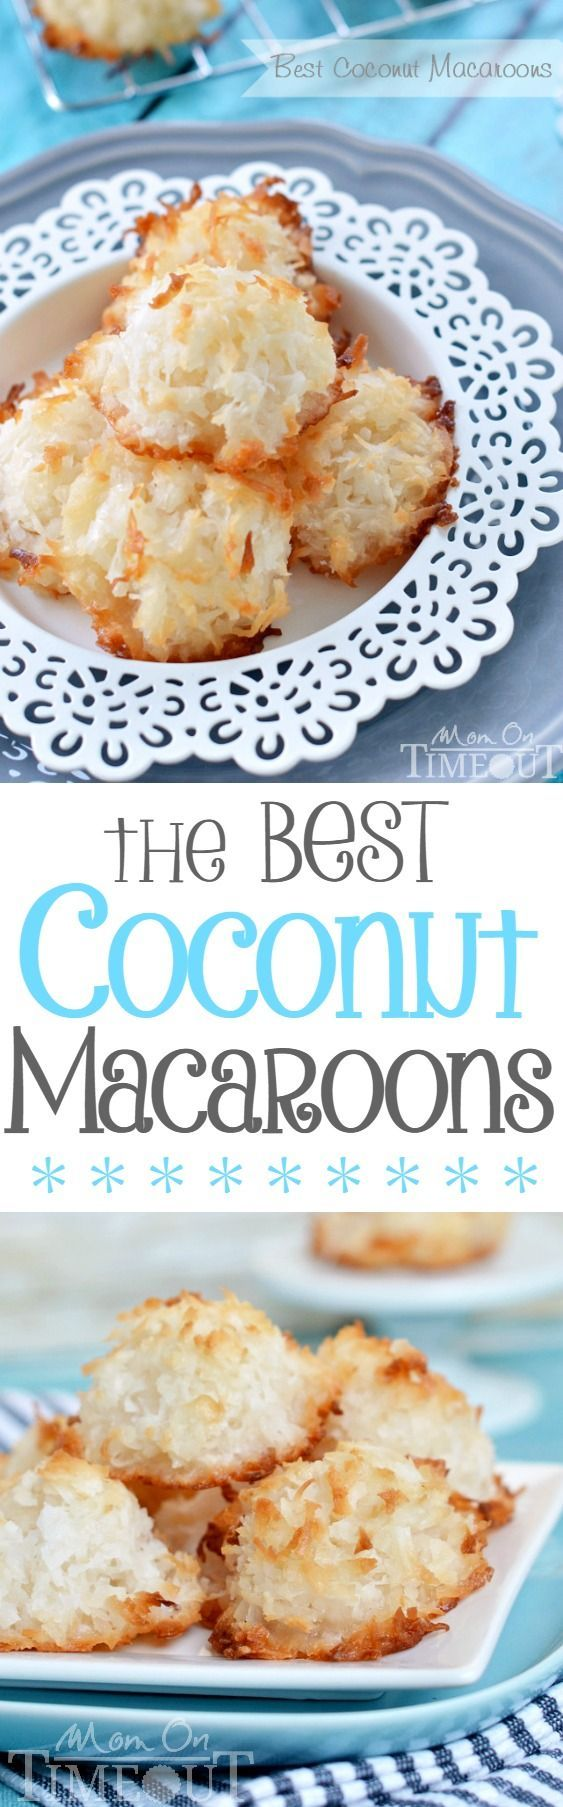 For the true coconut lovers out there - this is my all-time favorite recipe for the Best Coconut Macaroons!  Made without sweetened condensed milk, the delicate, sweet flavor of coconut really shines through.  Chewy on the inside and perfectly toasted on the outside, dry macaroons are a thing of the past.